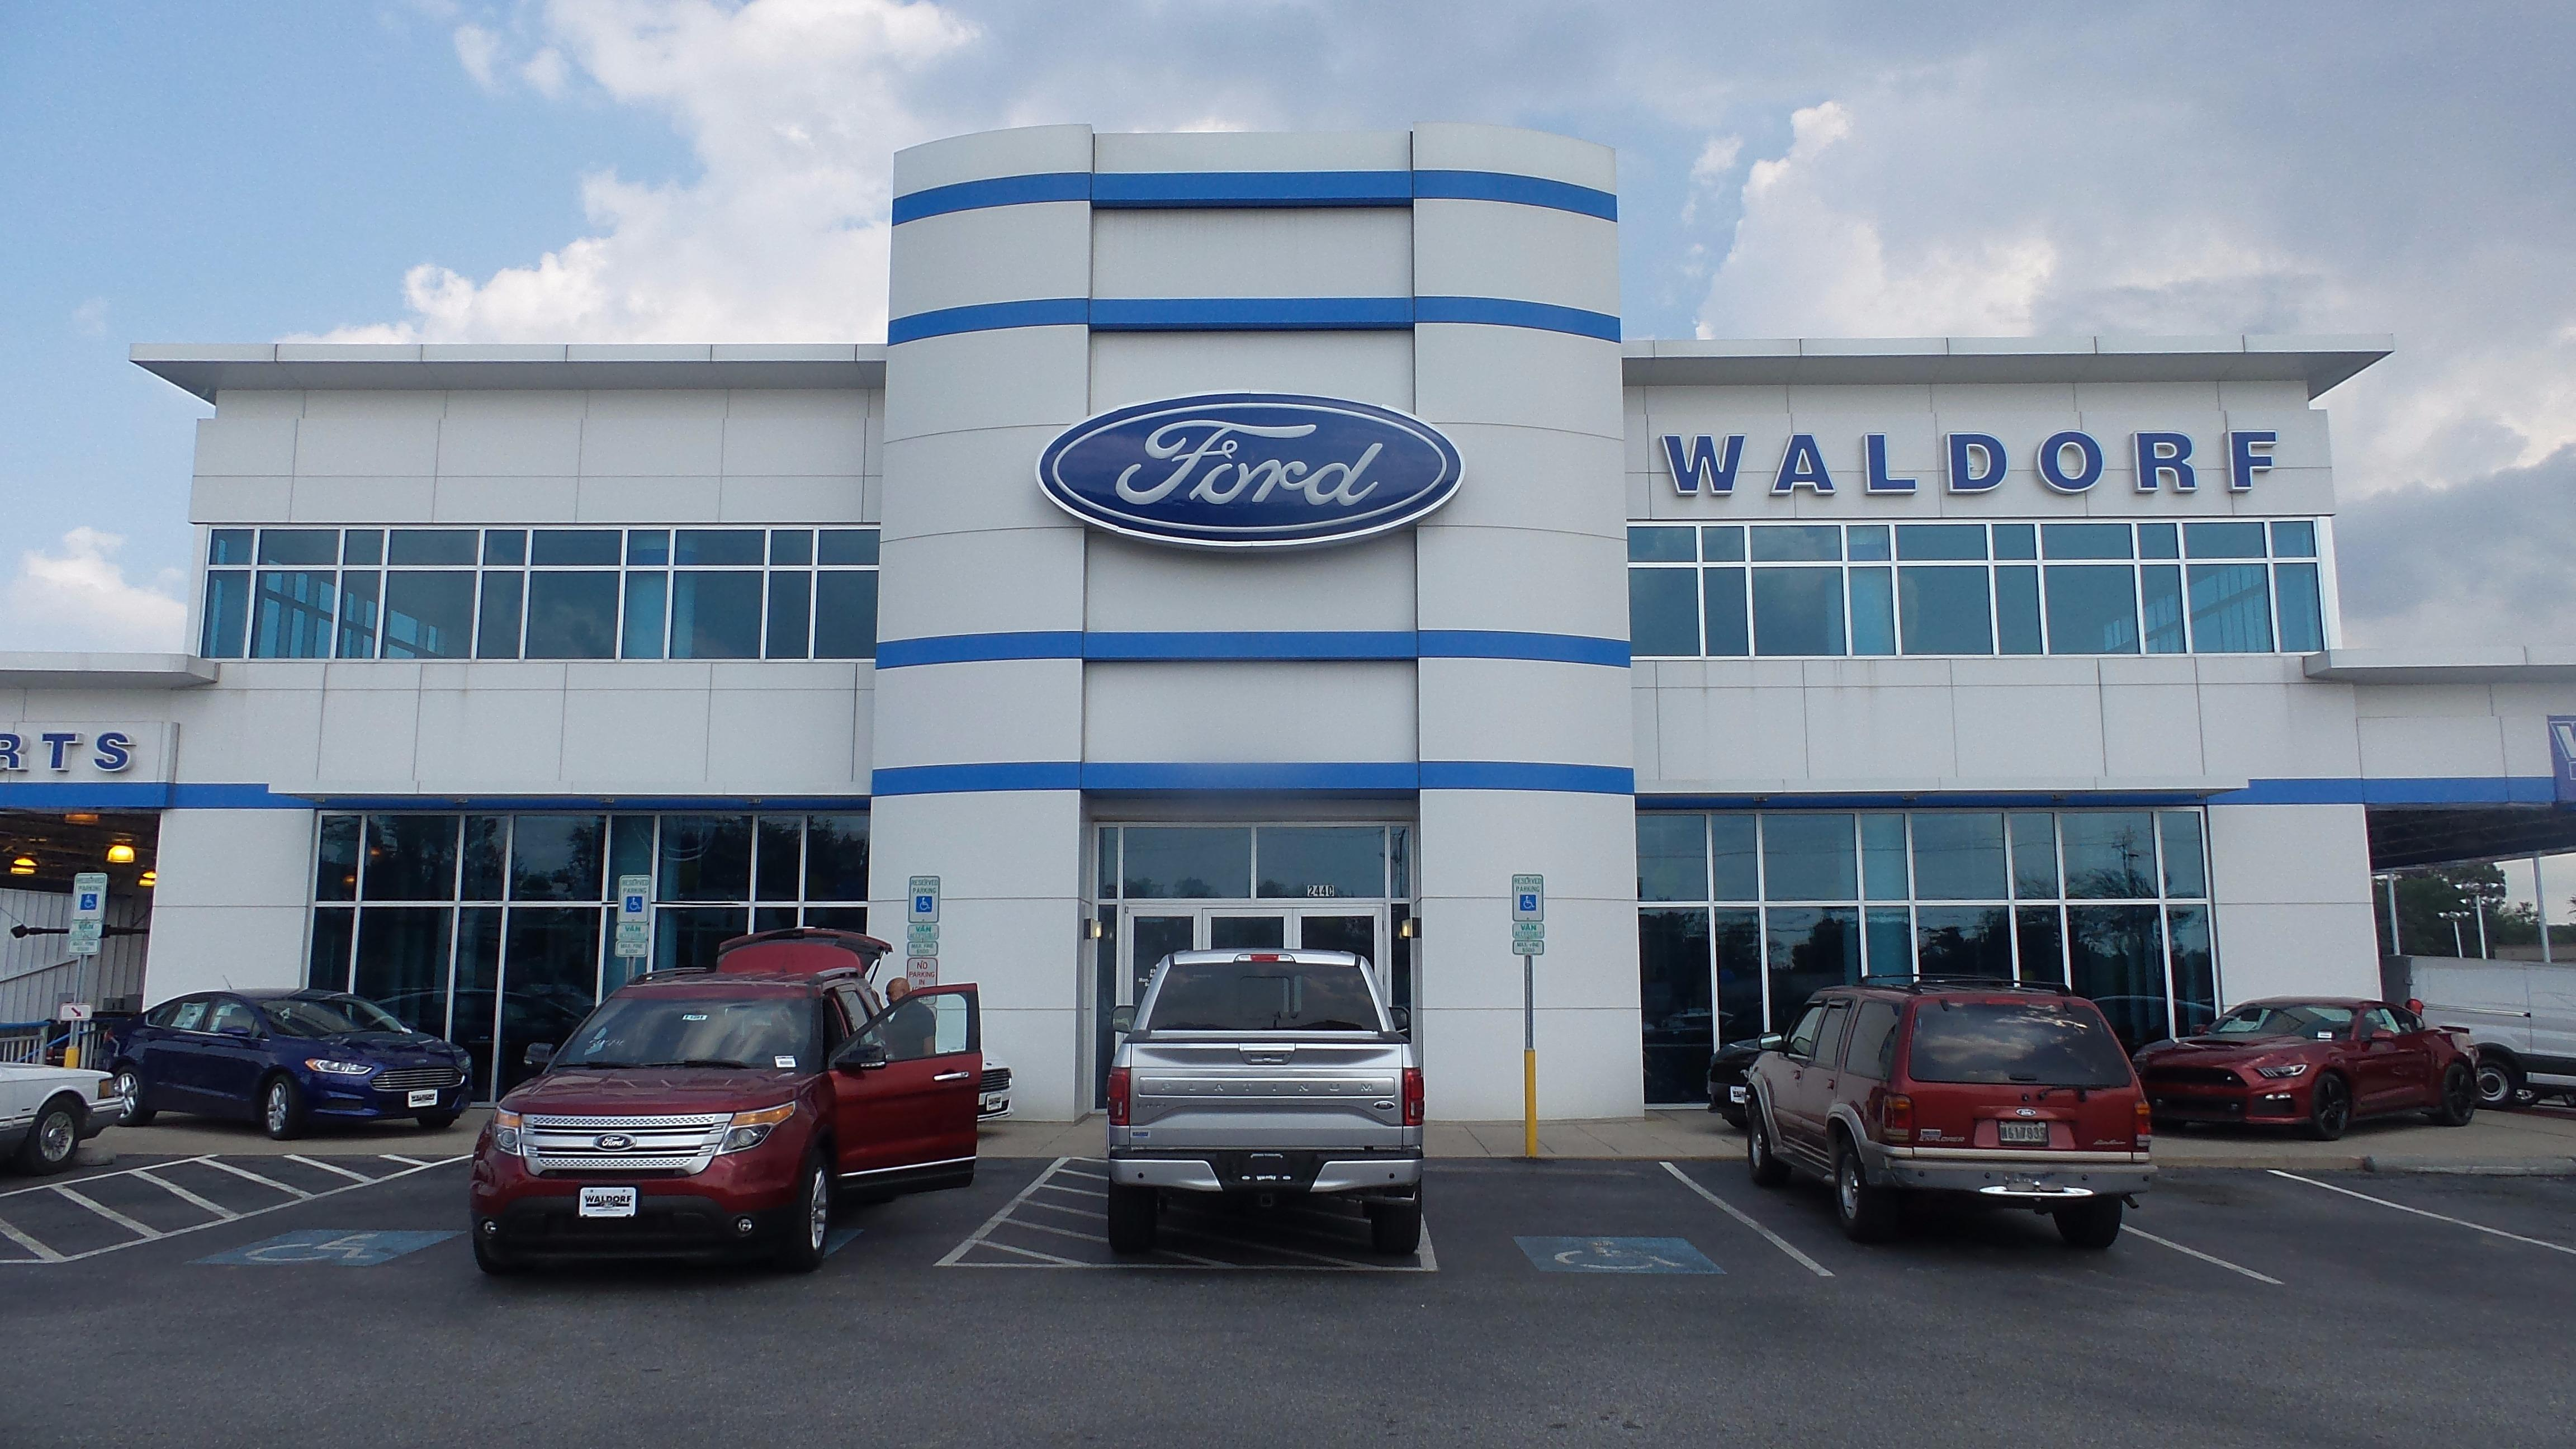 waldorf ford in waldorf md auto dealers yellow pages directory inc. Cars Review. Best American Auto & Cars Review